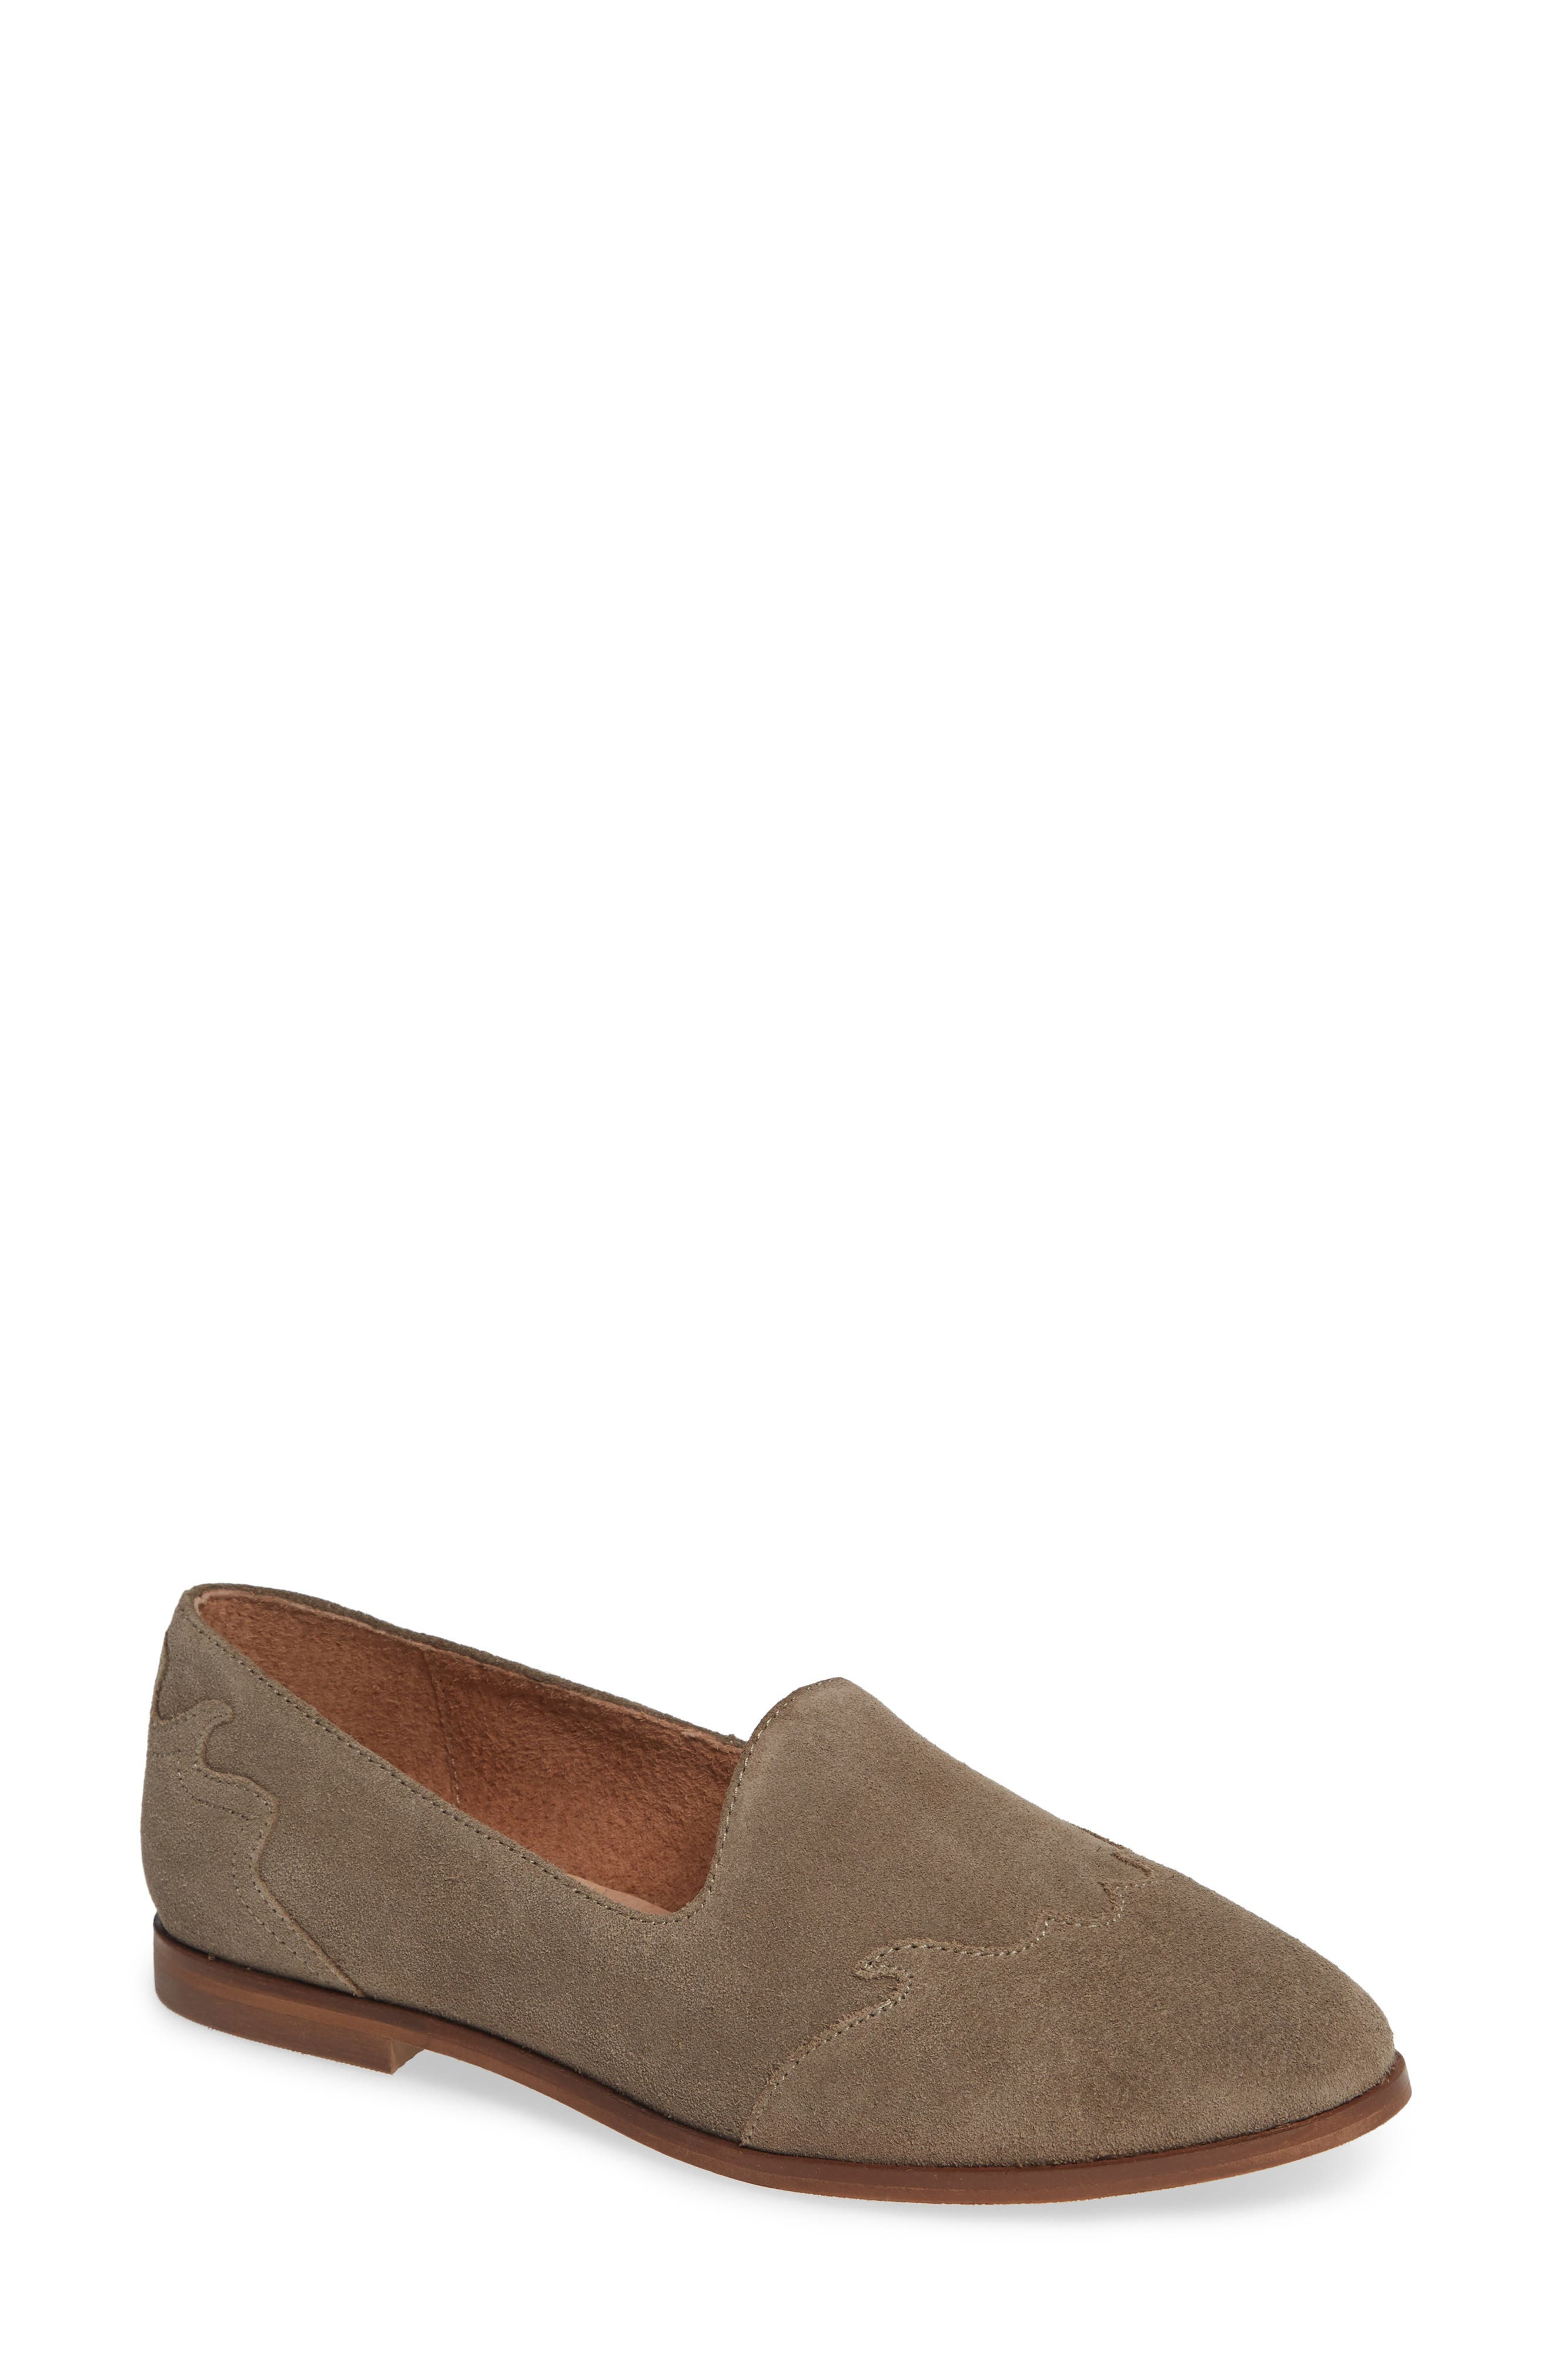 Revolution Loafer,                         Main,                         color, TAUPE SUEDE